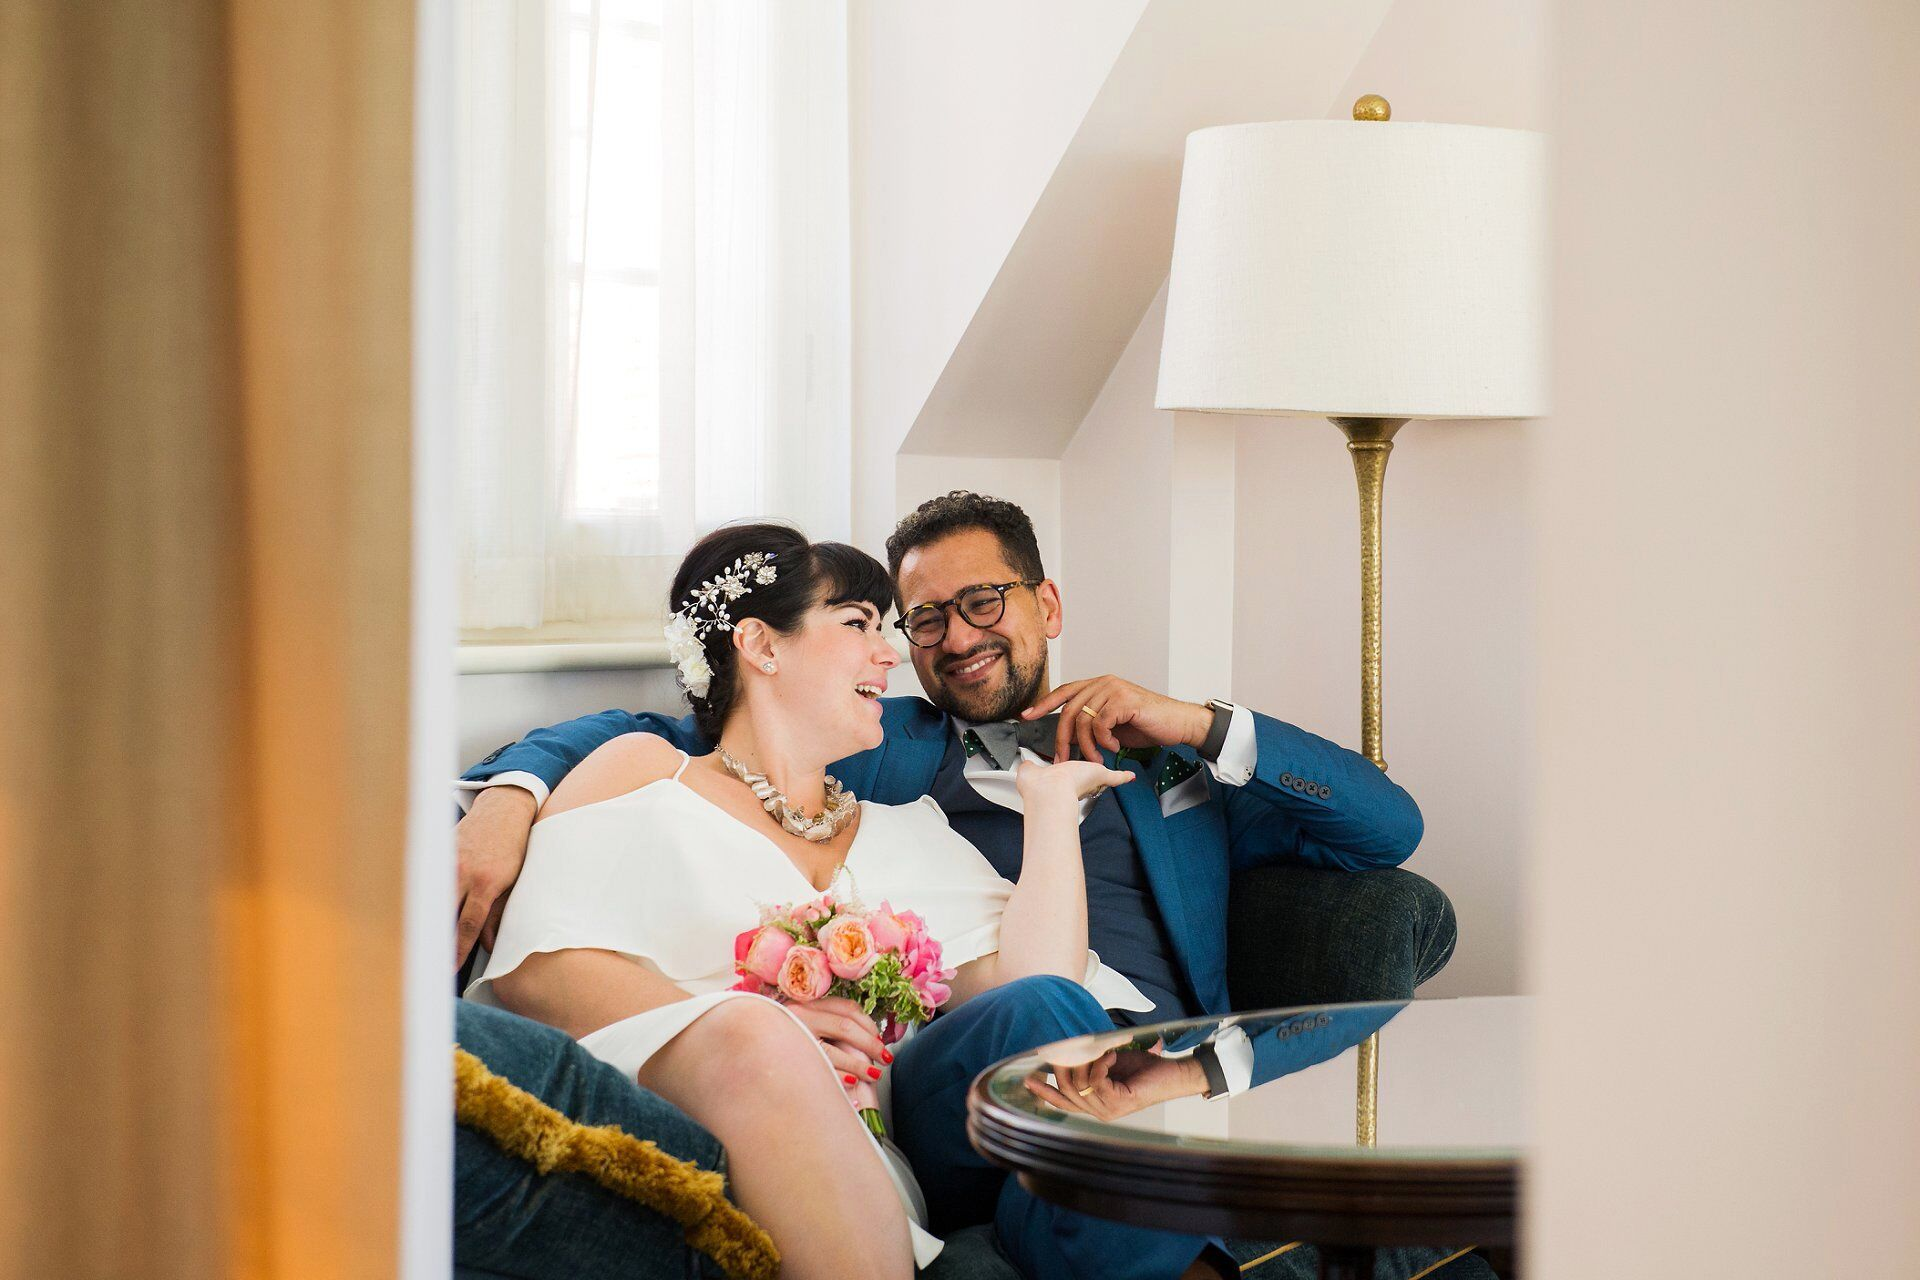 marylebone room wedding photography and chiltern firehouse wedding reception photographer emma duggan with the couple relaxing in their bedroom